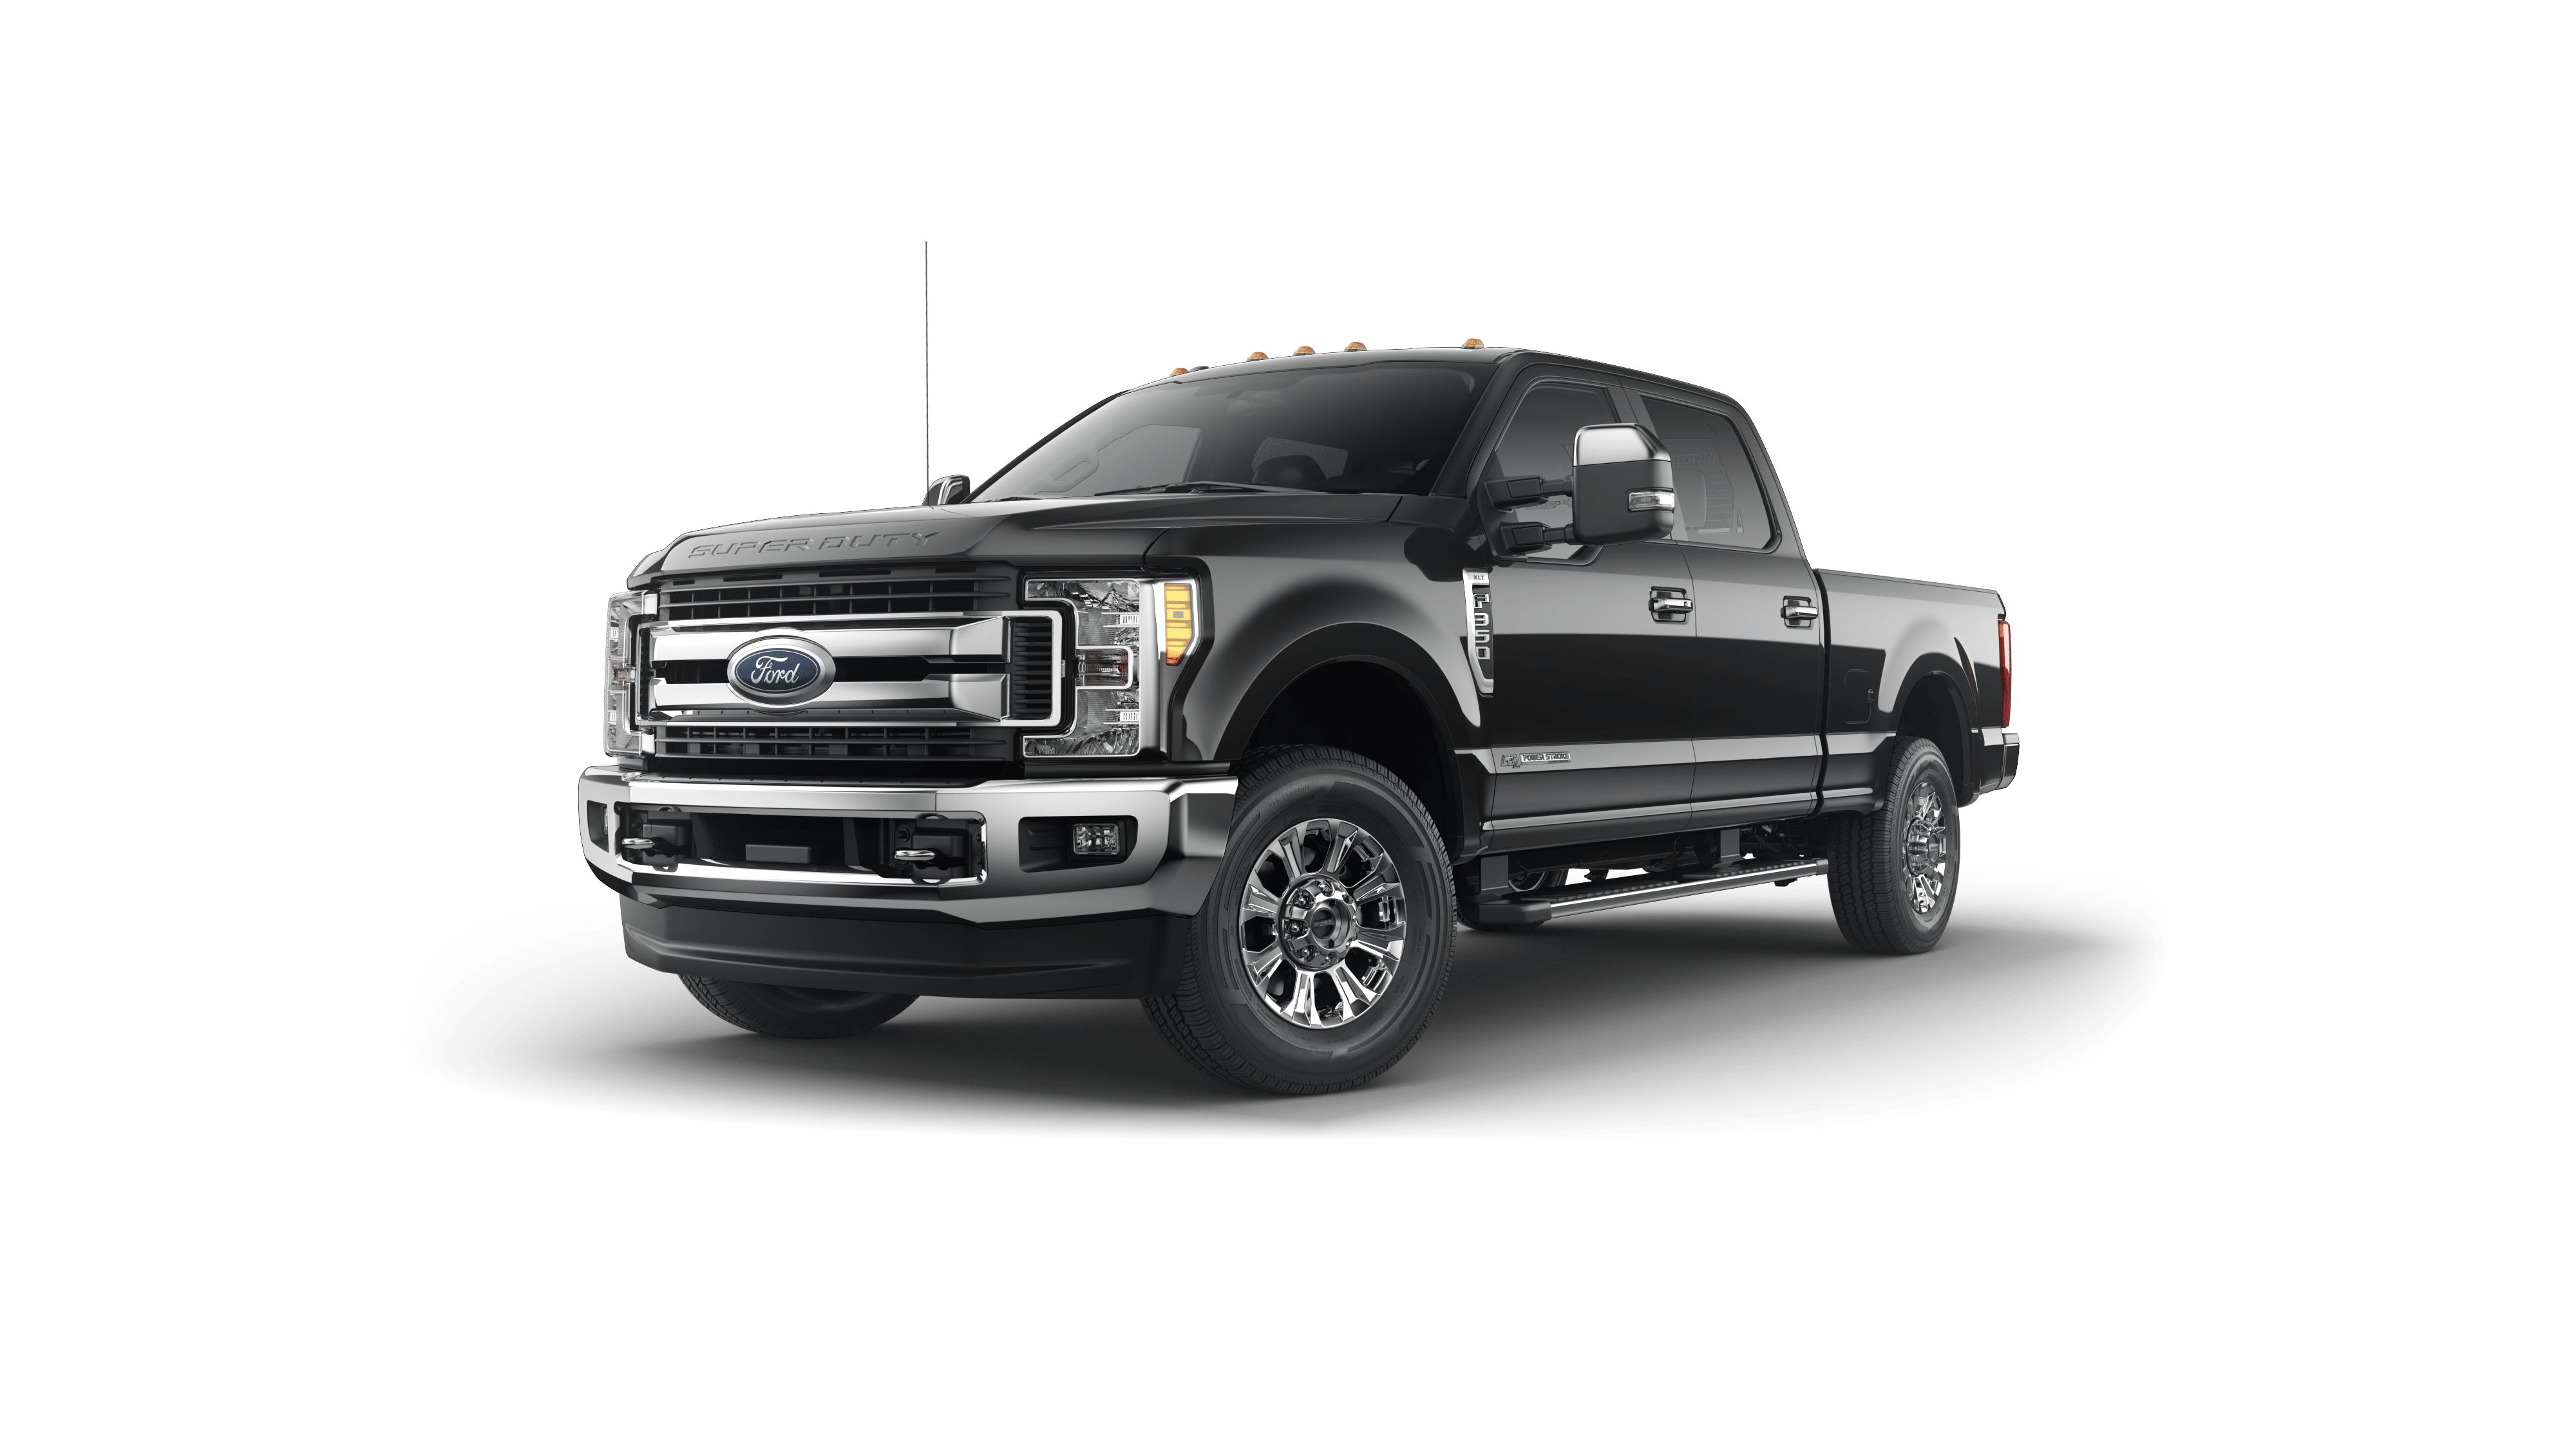 2019 Ford Super Duty F-350 SRW Vehicle Photo in Souderton, PA 18964-1038